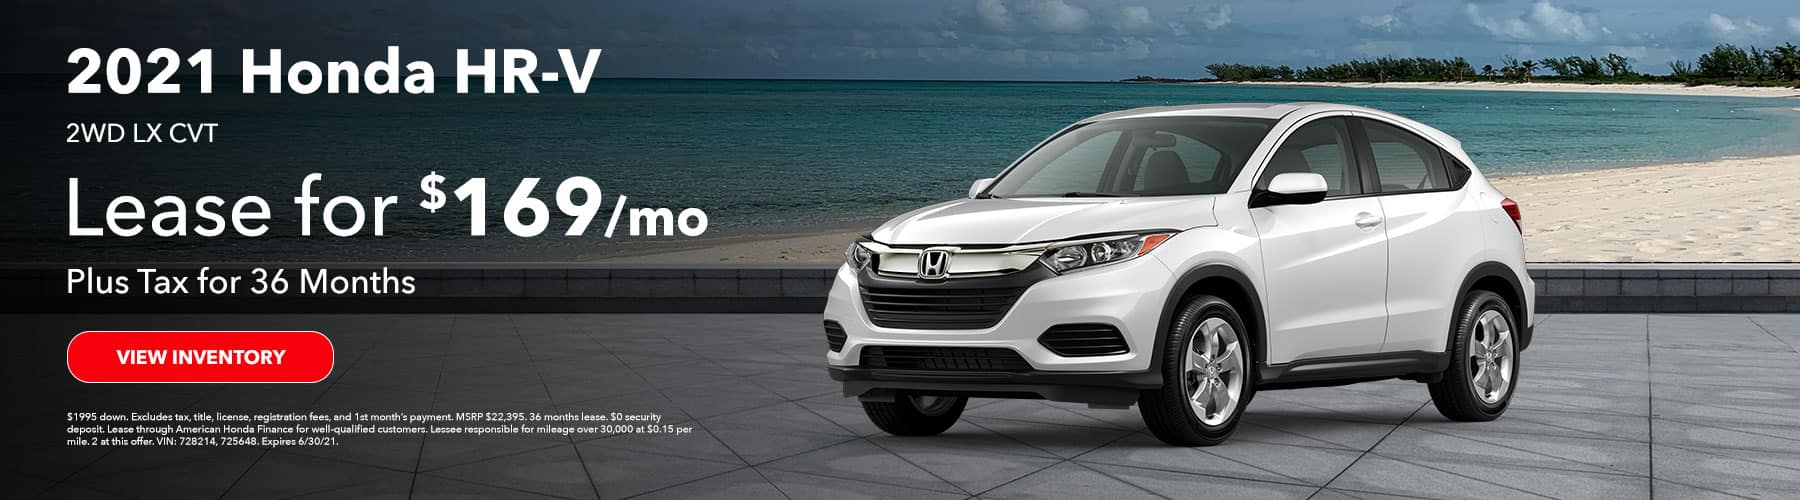 2021 Honda HR-V 2WD LX CVT. Lease for $169 plus Tax for 36 Months